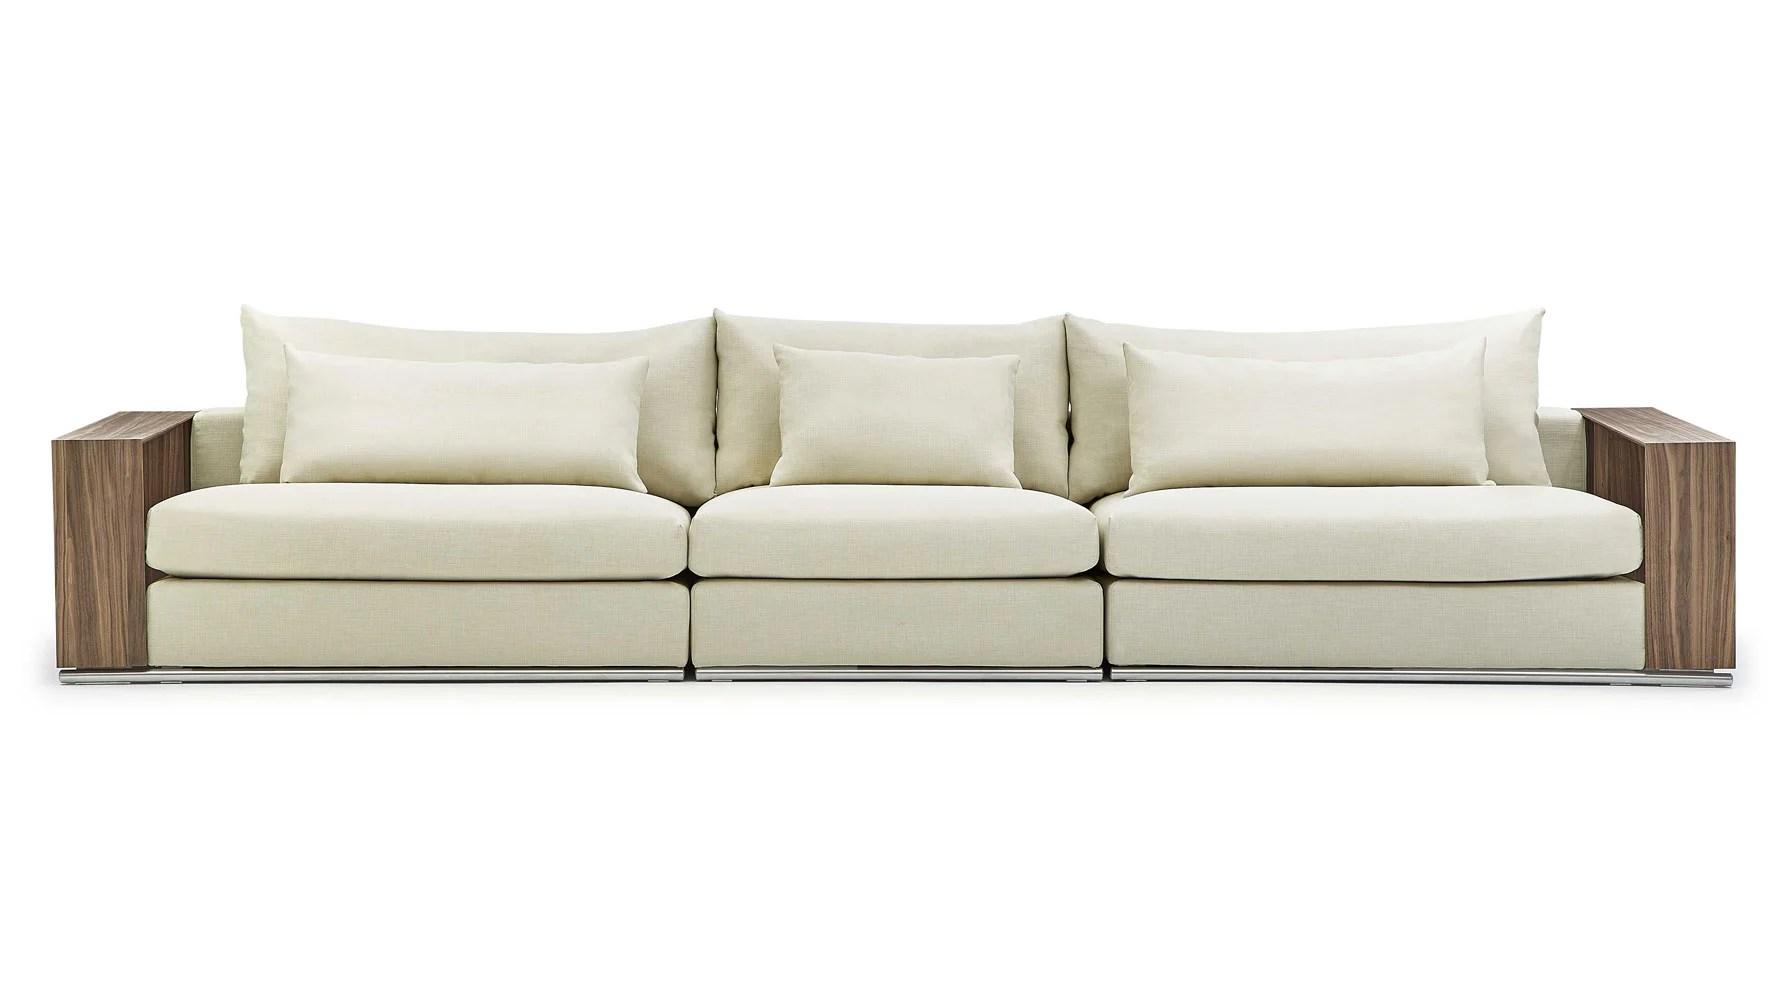 Sofa X Long Soriano Wooden Arm Long Sofa Beige